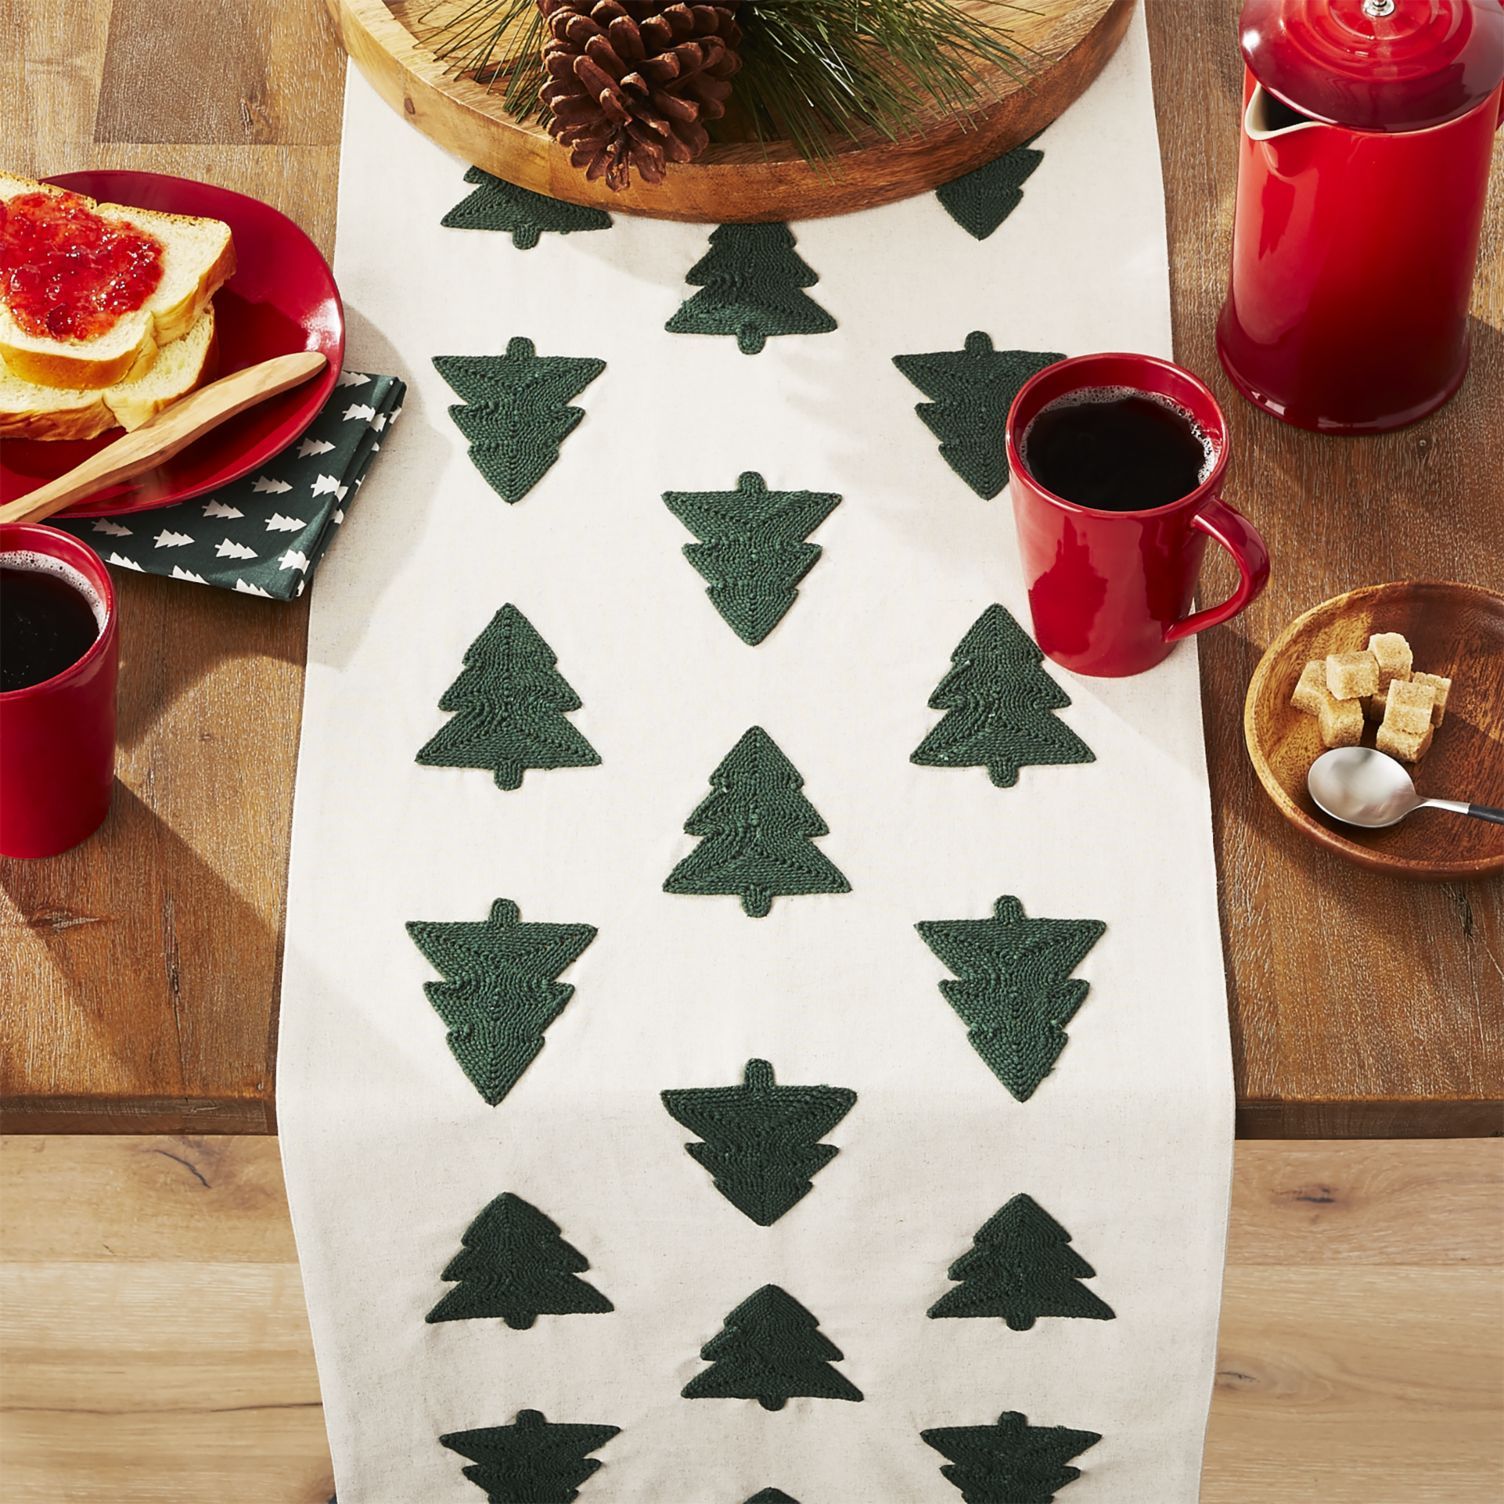 Woodland Trees Embroidered Table Runner Crate And Barrel Rows Of